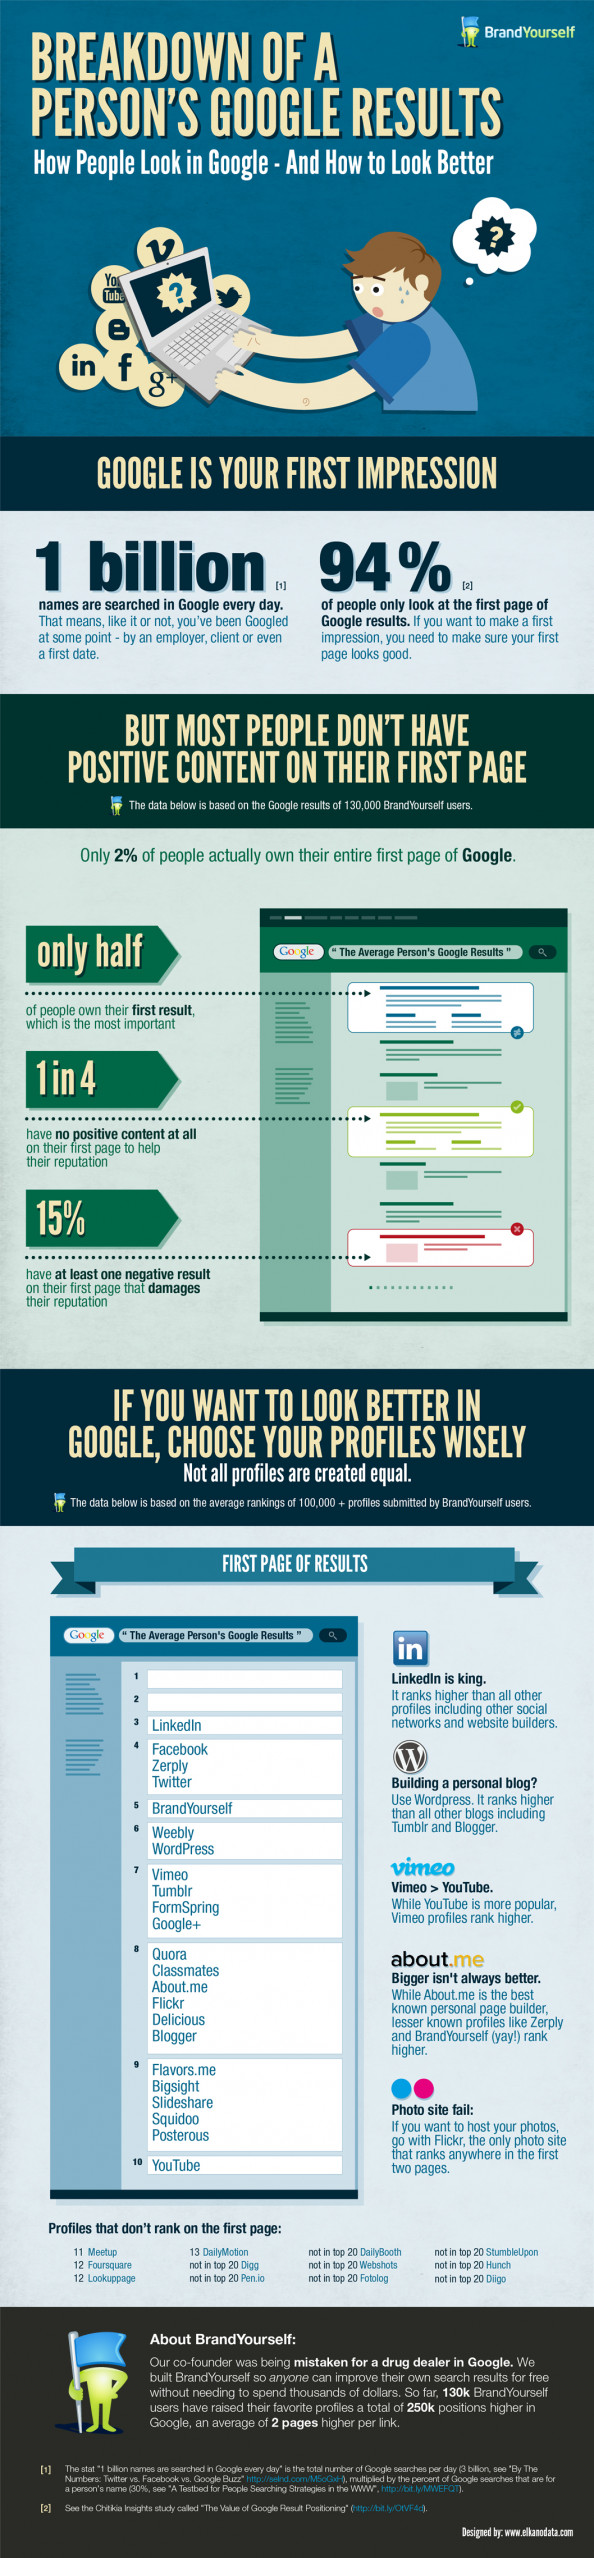 Want to Look Better in Google? Better Read This First Infographic